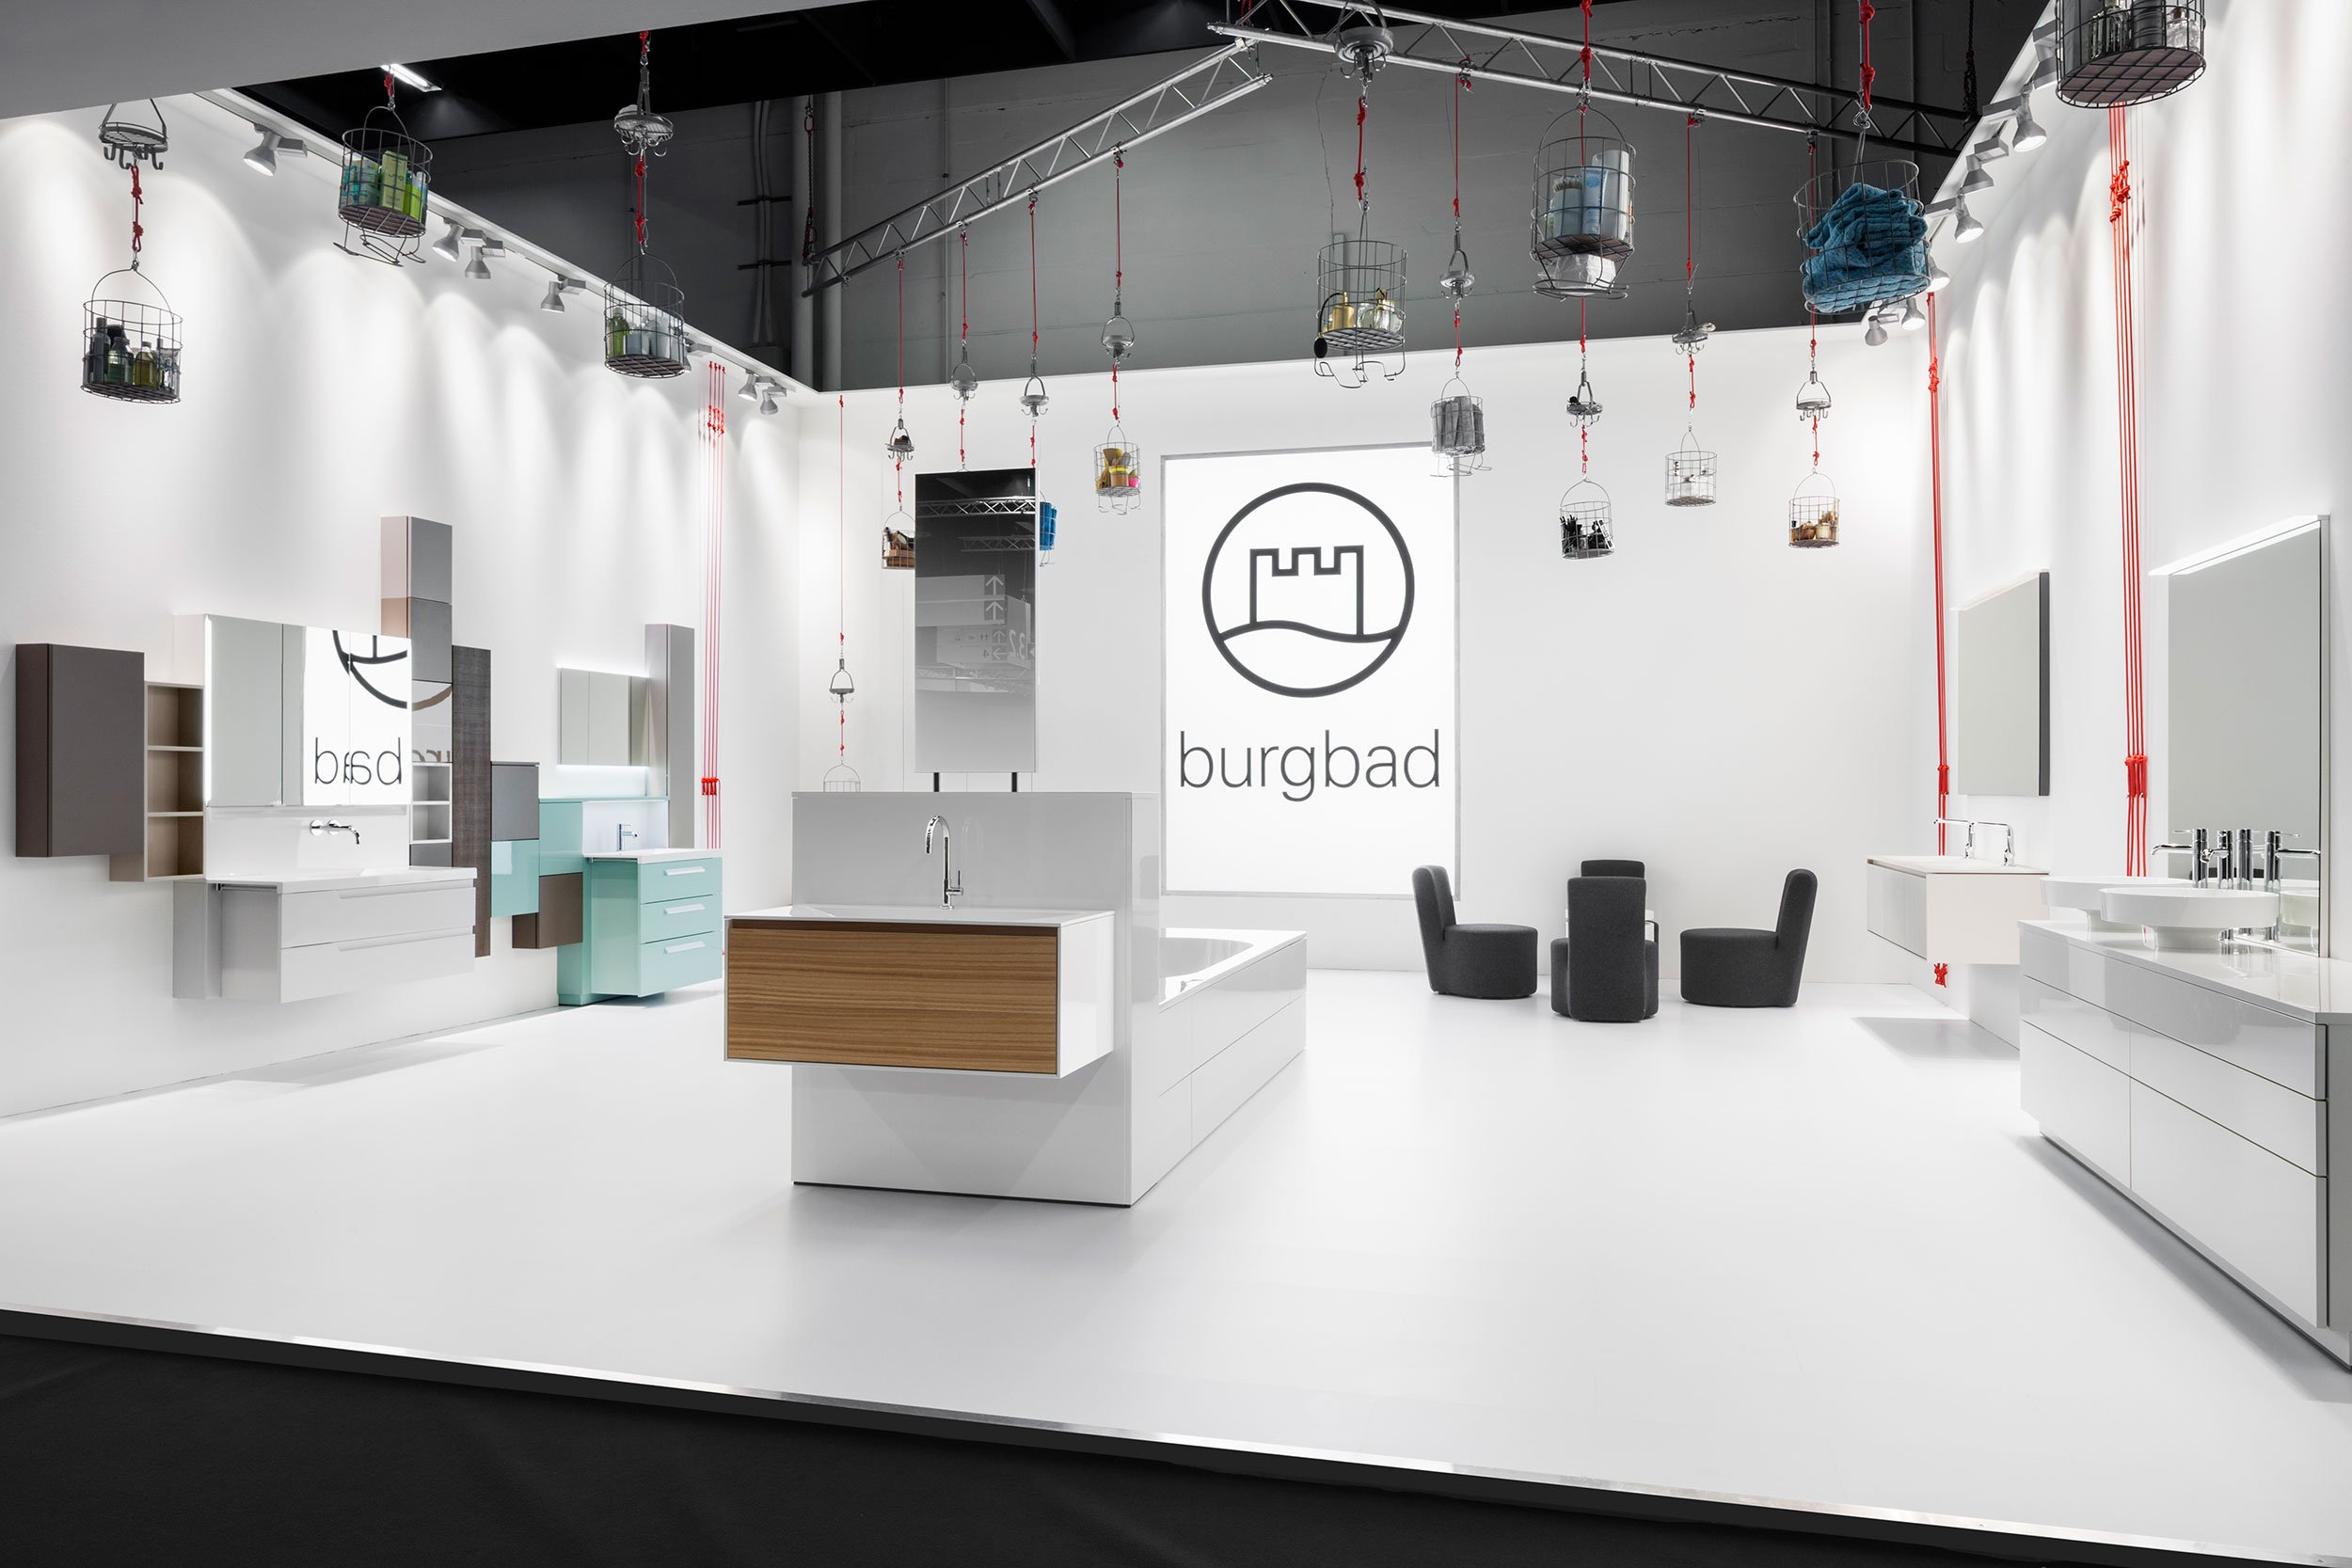 https://farconsulting.de/wp-content/uploads/2020/09/02_Pull_Messestand_burgbad_imm_cologne_2014_FAR.jpg